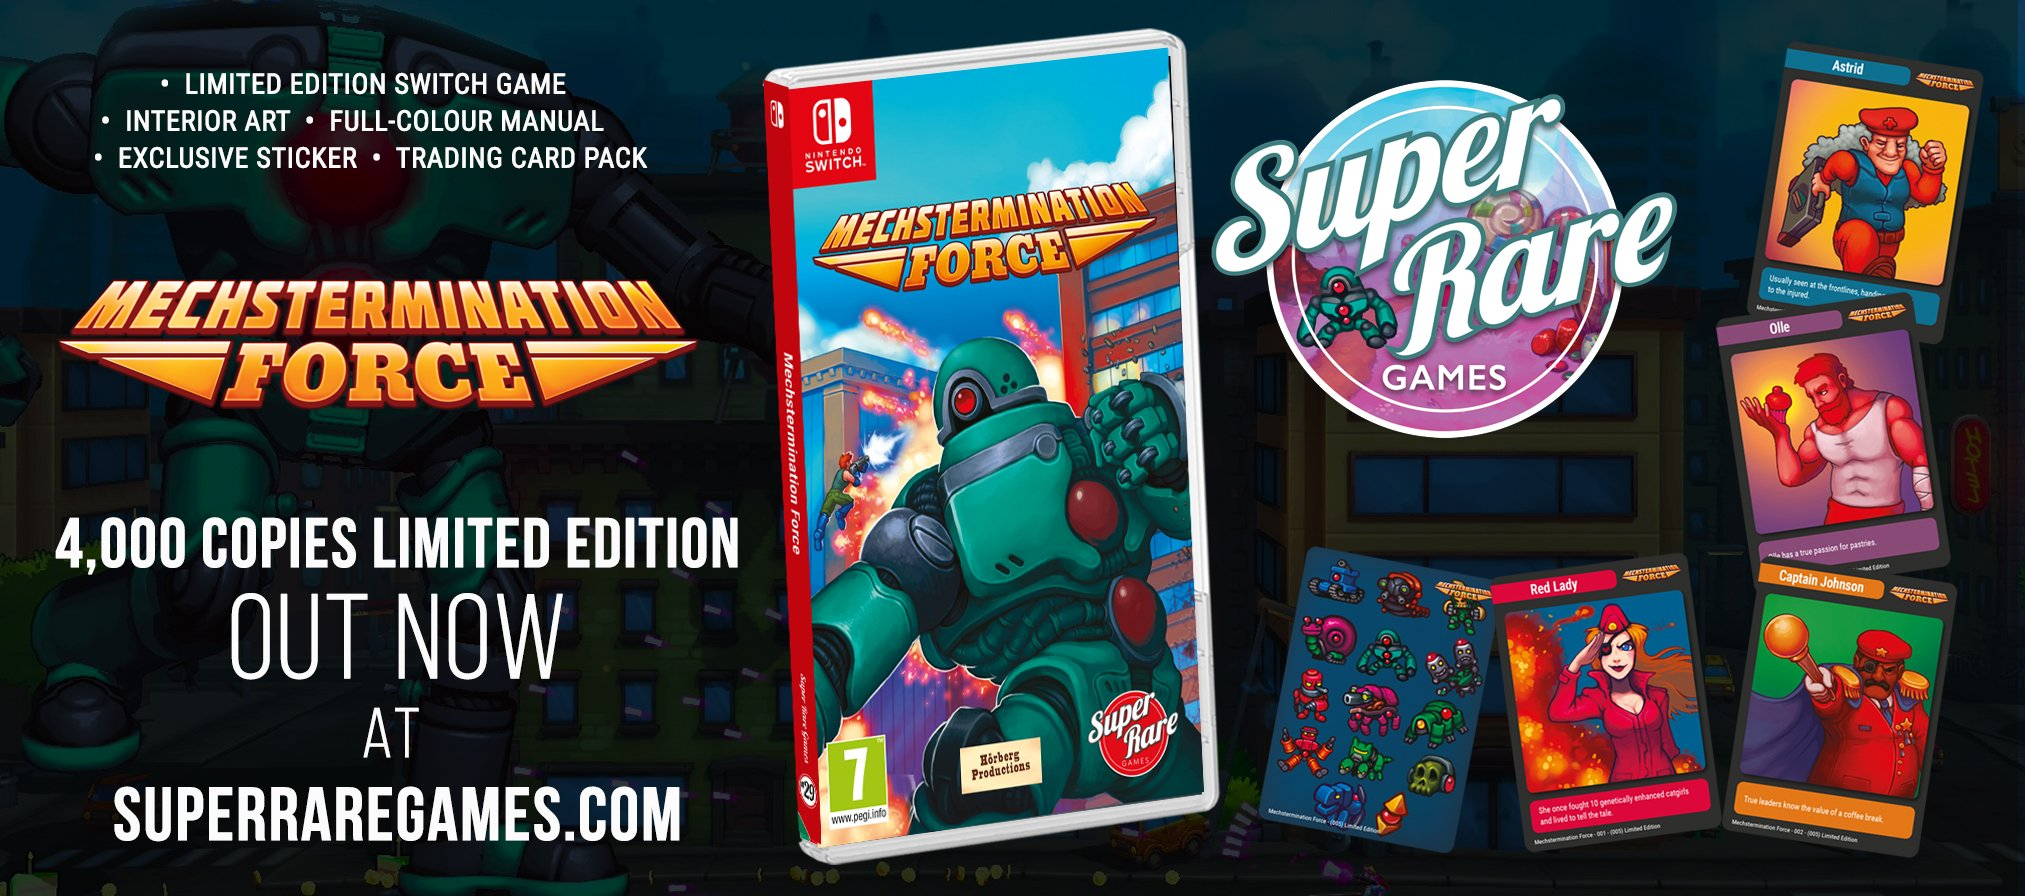 Super Rare Games Mechstermination Force Switch contest